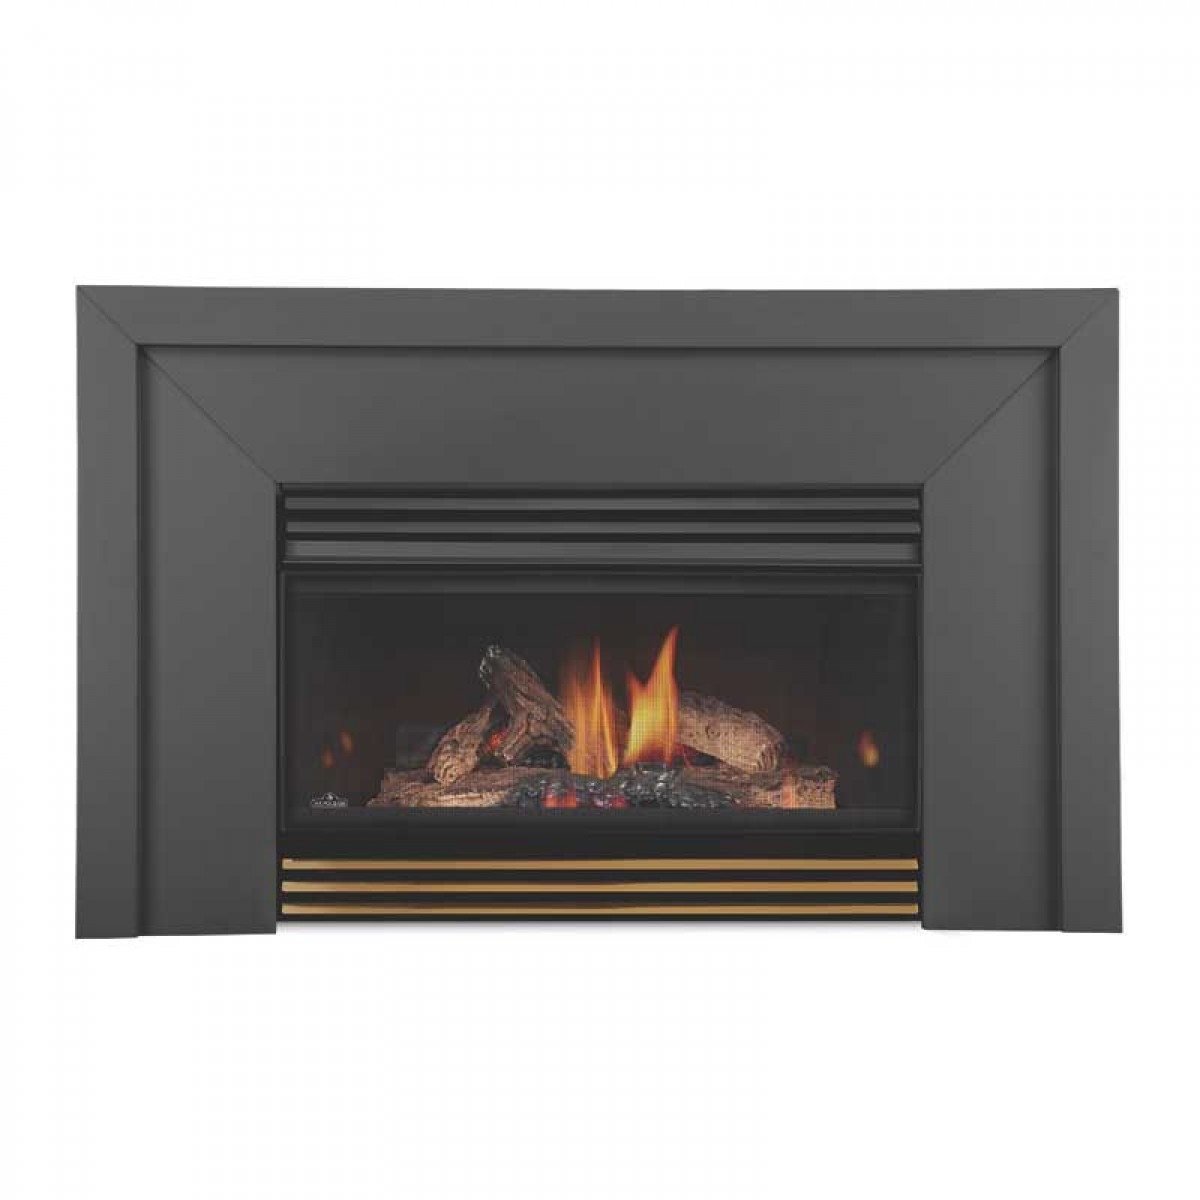 Napoleon Roxbury 3600 Gas Fireplace Insert